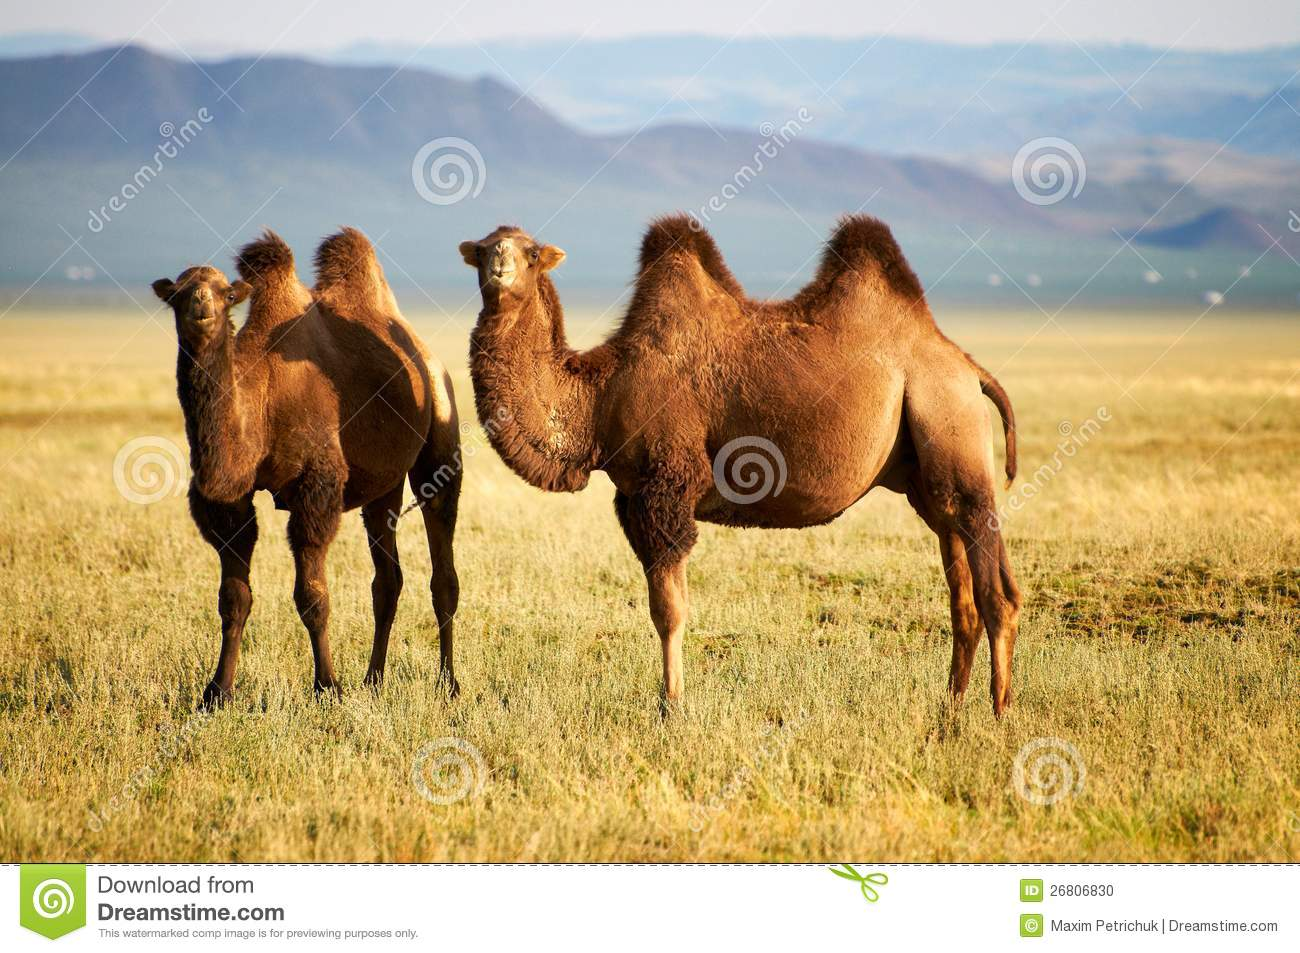 Two camel in mongolia